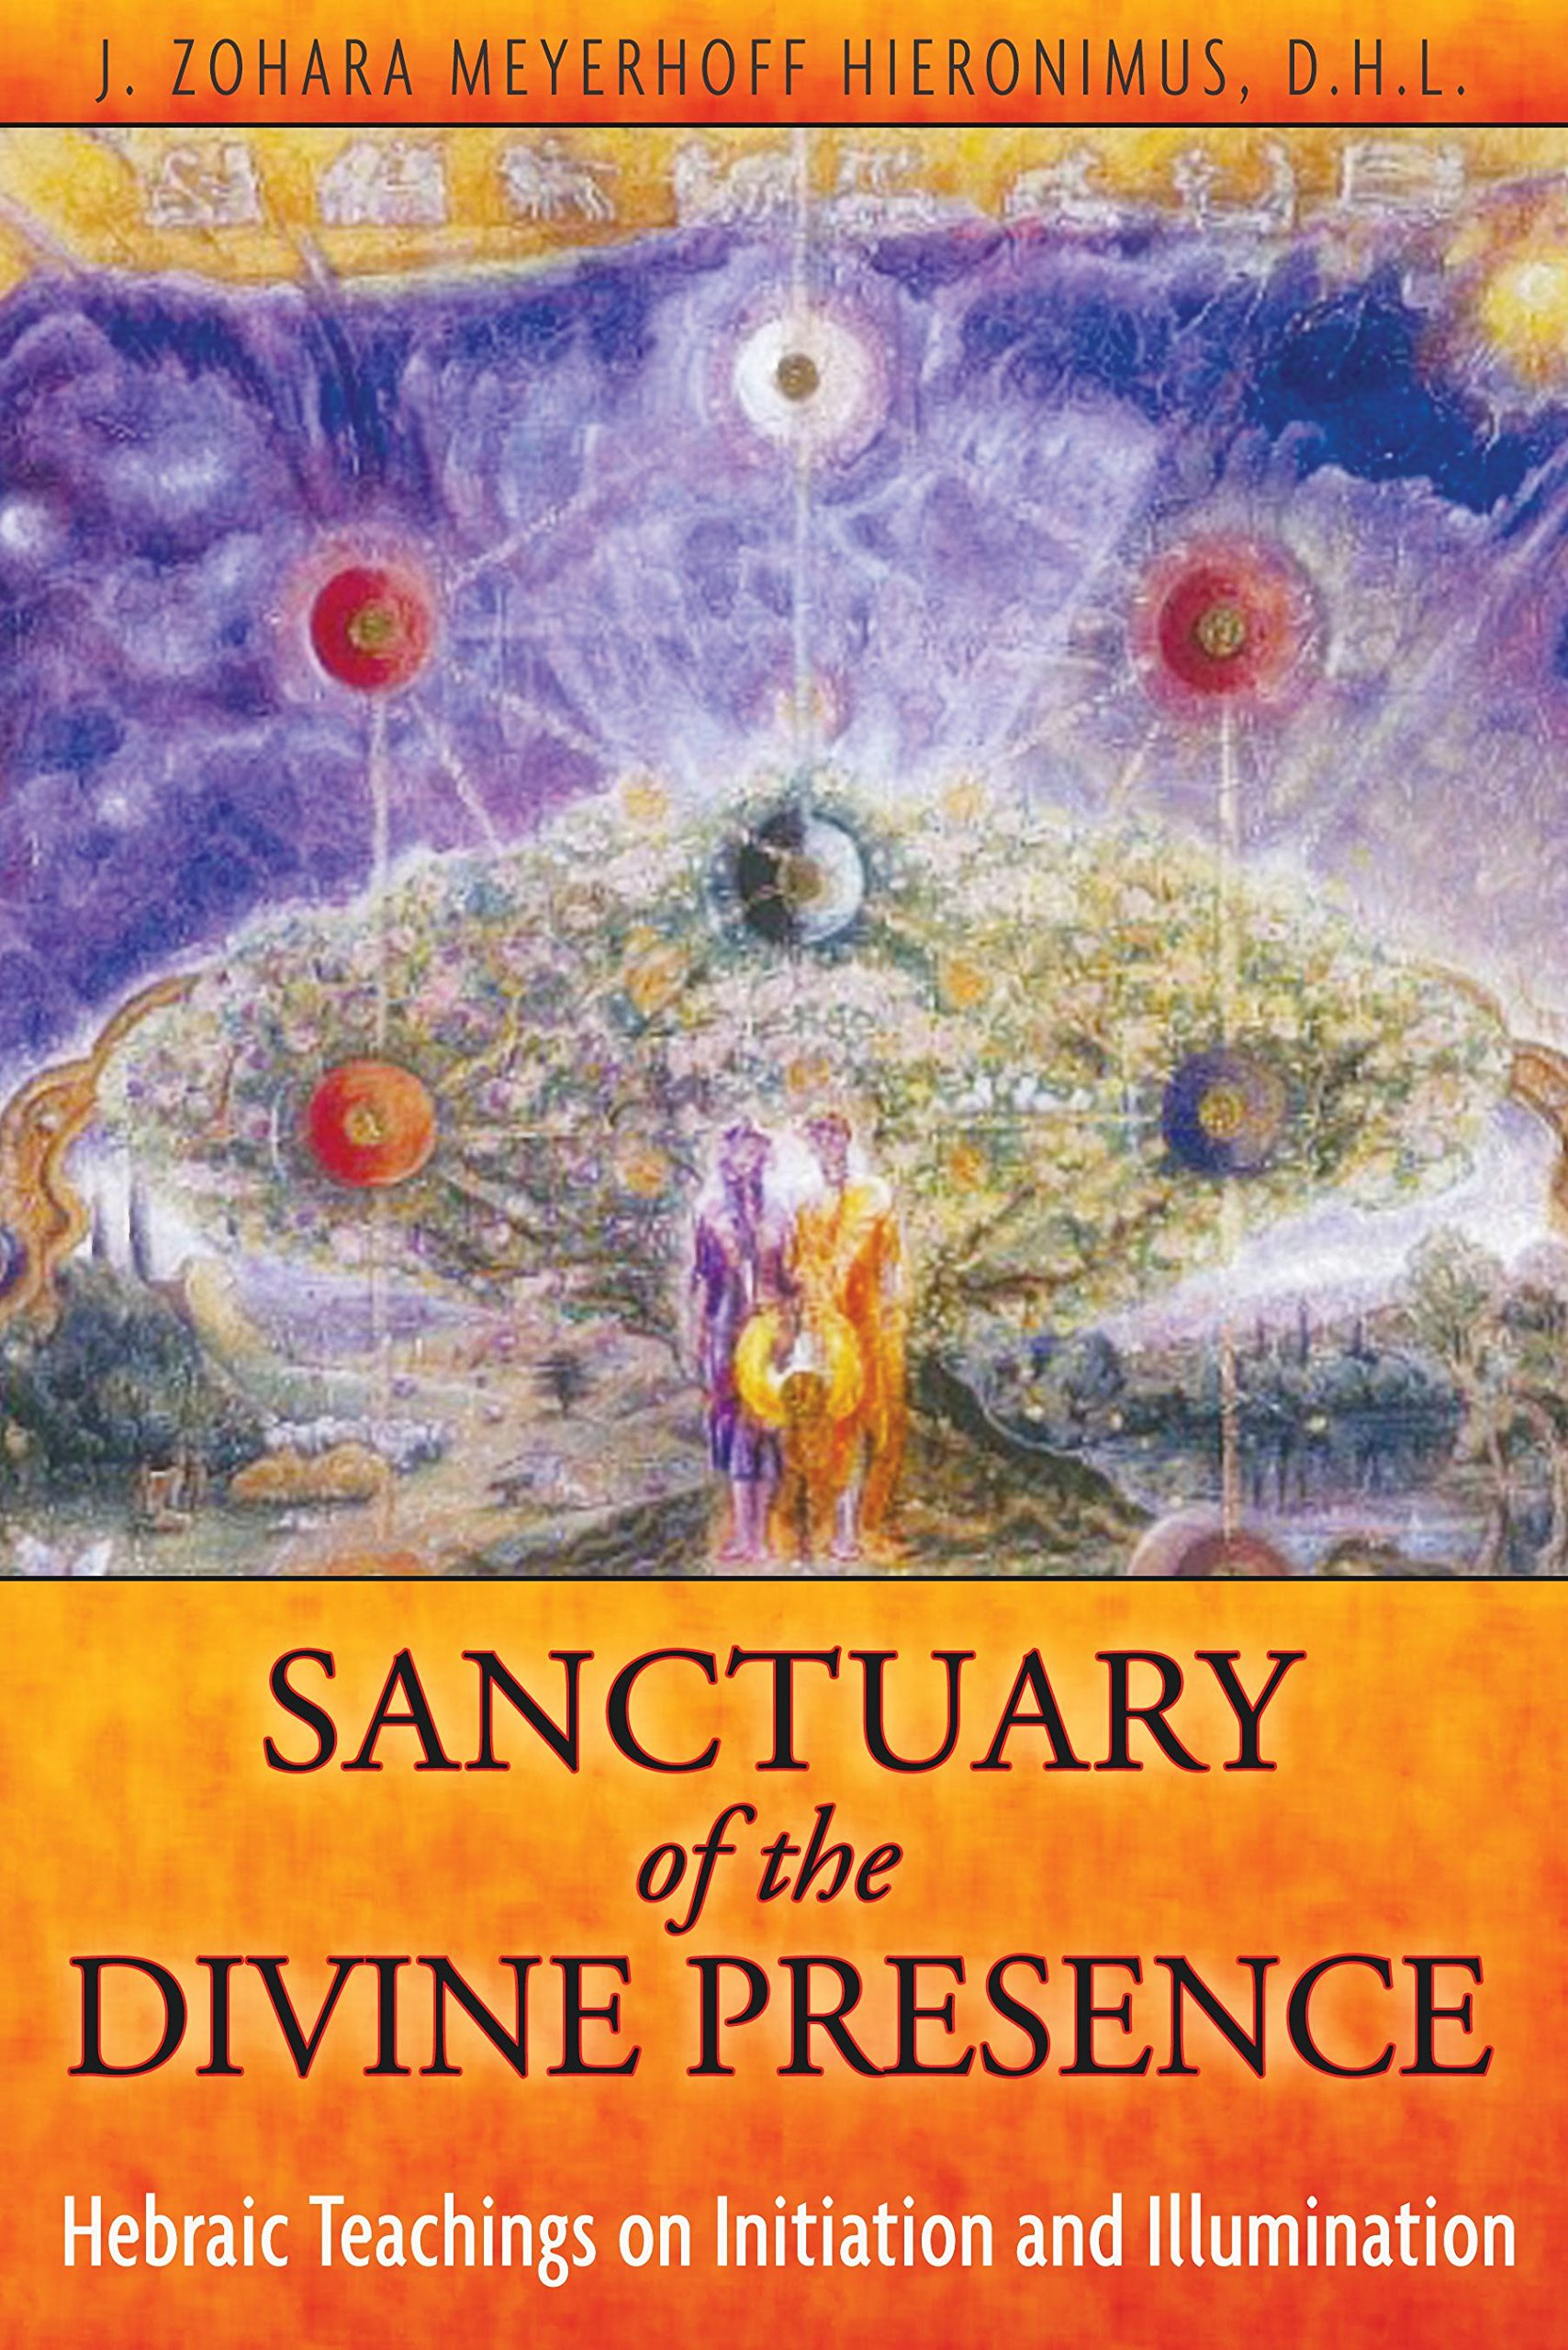 Sanctuary of the Divine Presence - Hebraic Teachings on Initiation and Illumination